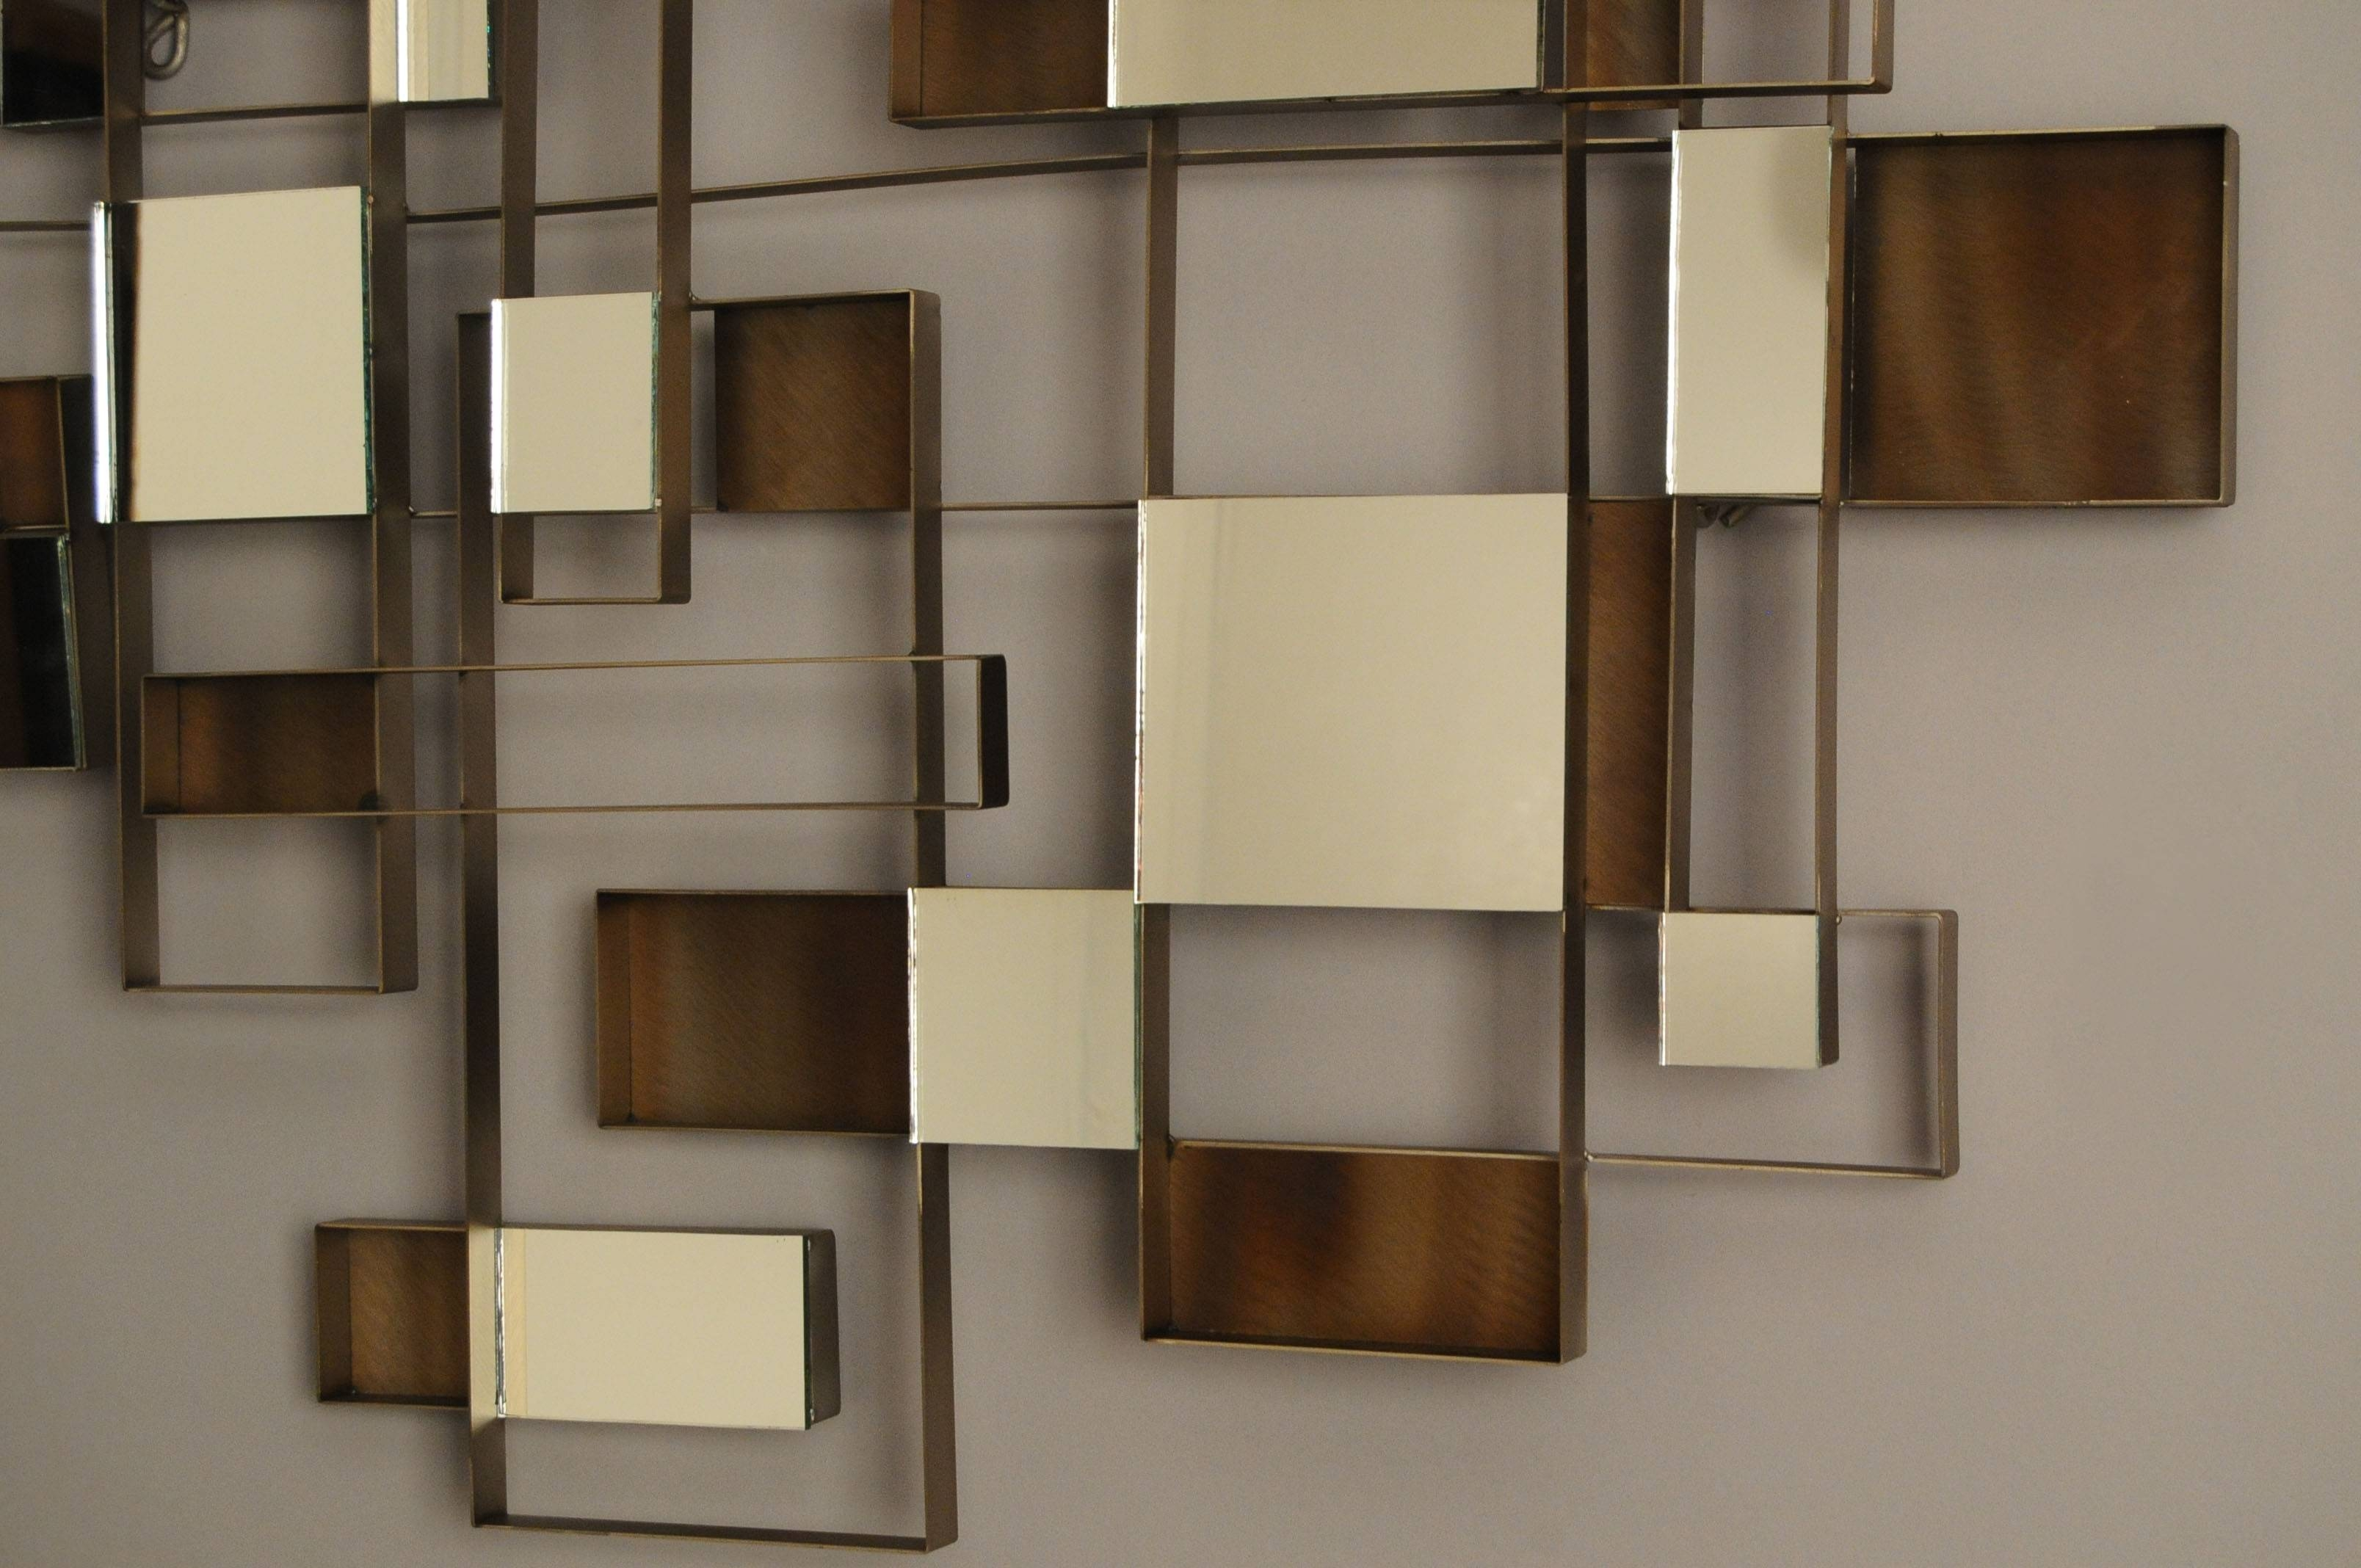 Bedroom : Trendy Images Of In Photography Ideas Modern Mirror Wall Regarding Recent Modern Mirror Wall Art (View 5 of 20)